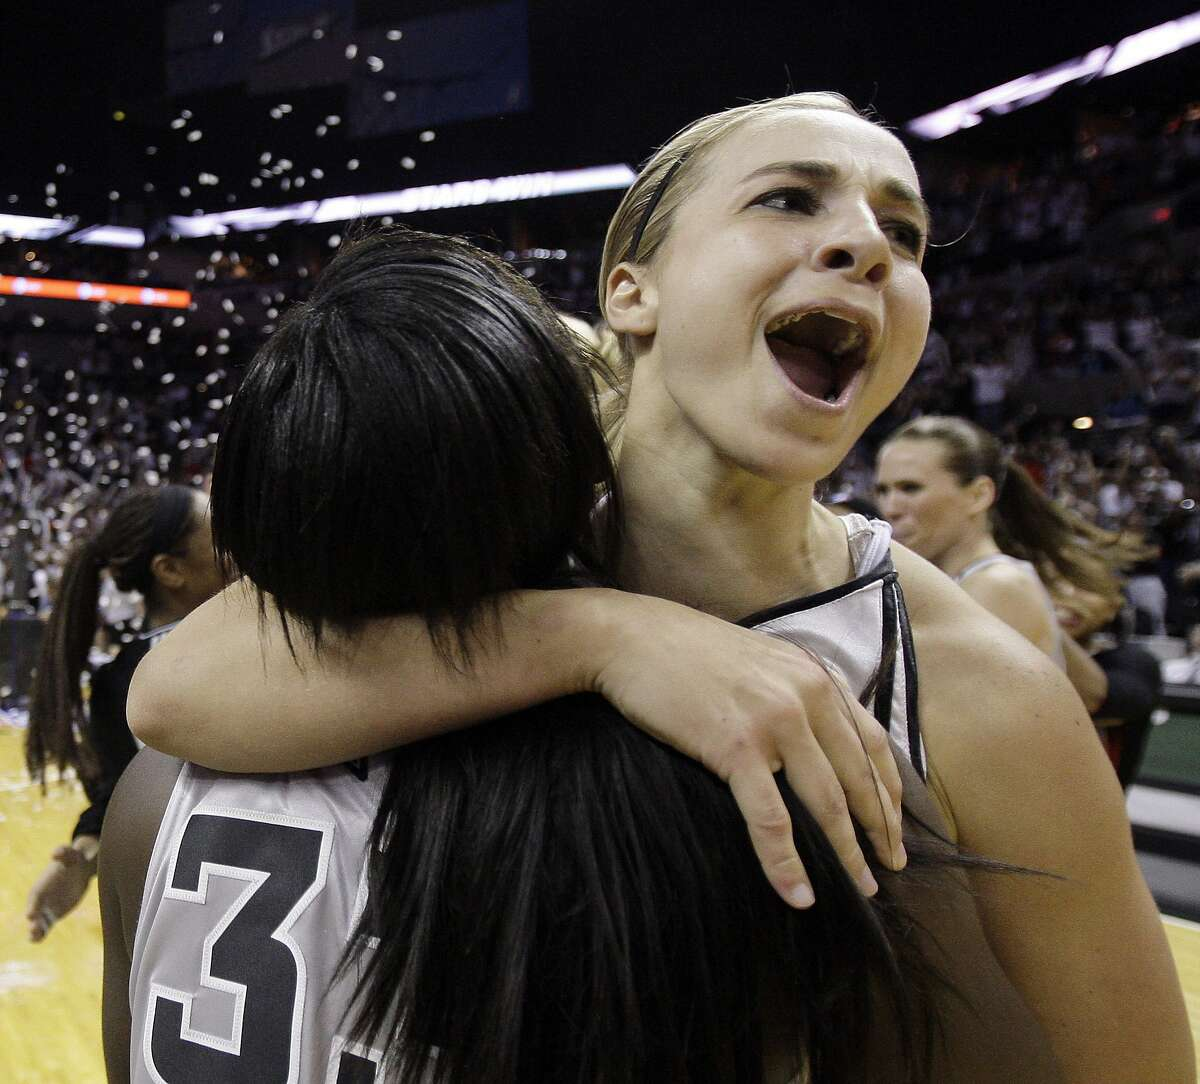 San Antonio Silver Stars' Becky Hammon, right, and Vickie Johnson, left, celebrate after defeating the Los Angeles Sparks to win game 3 of the WNBA Western Conference Finals basketball game in San Antonio, Sunday, Sept. 28, 2008. San Antonio won 76-72 and will advance to the WNBA finals. (AP Photo/Eric Gay)